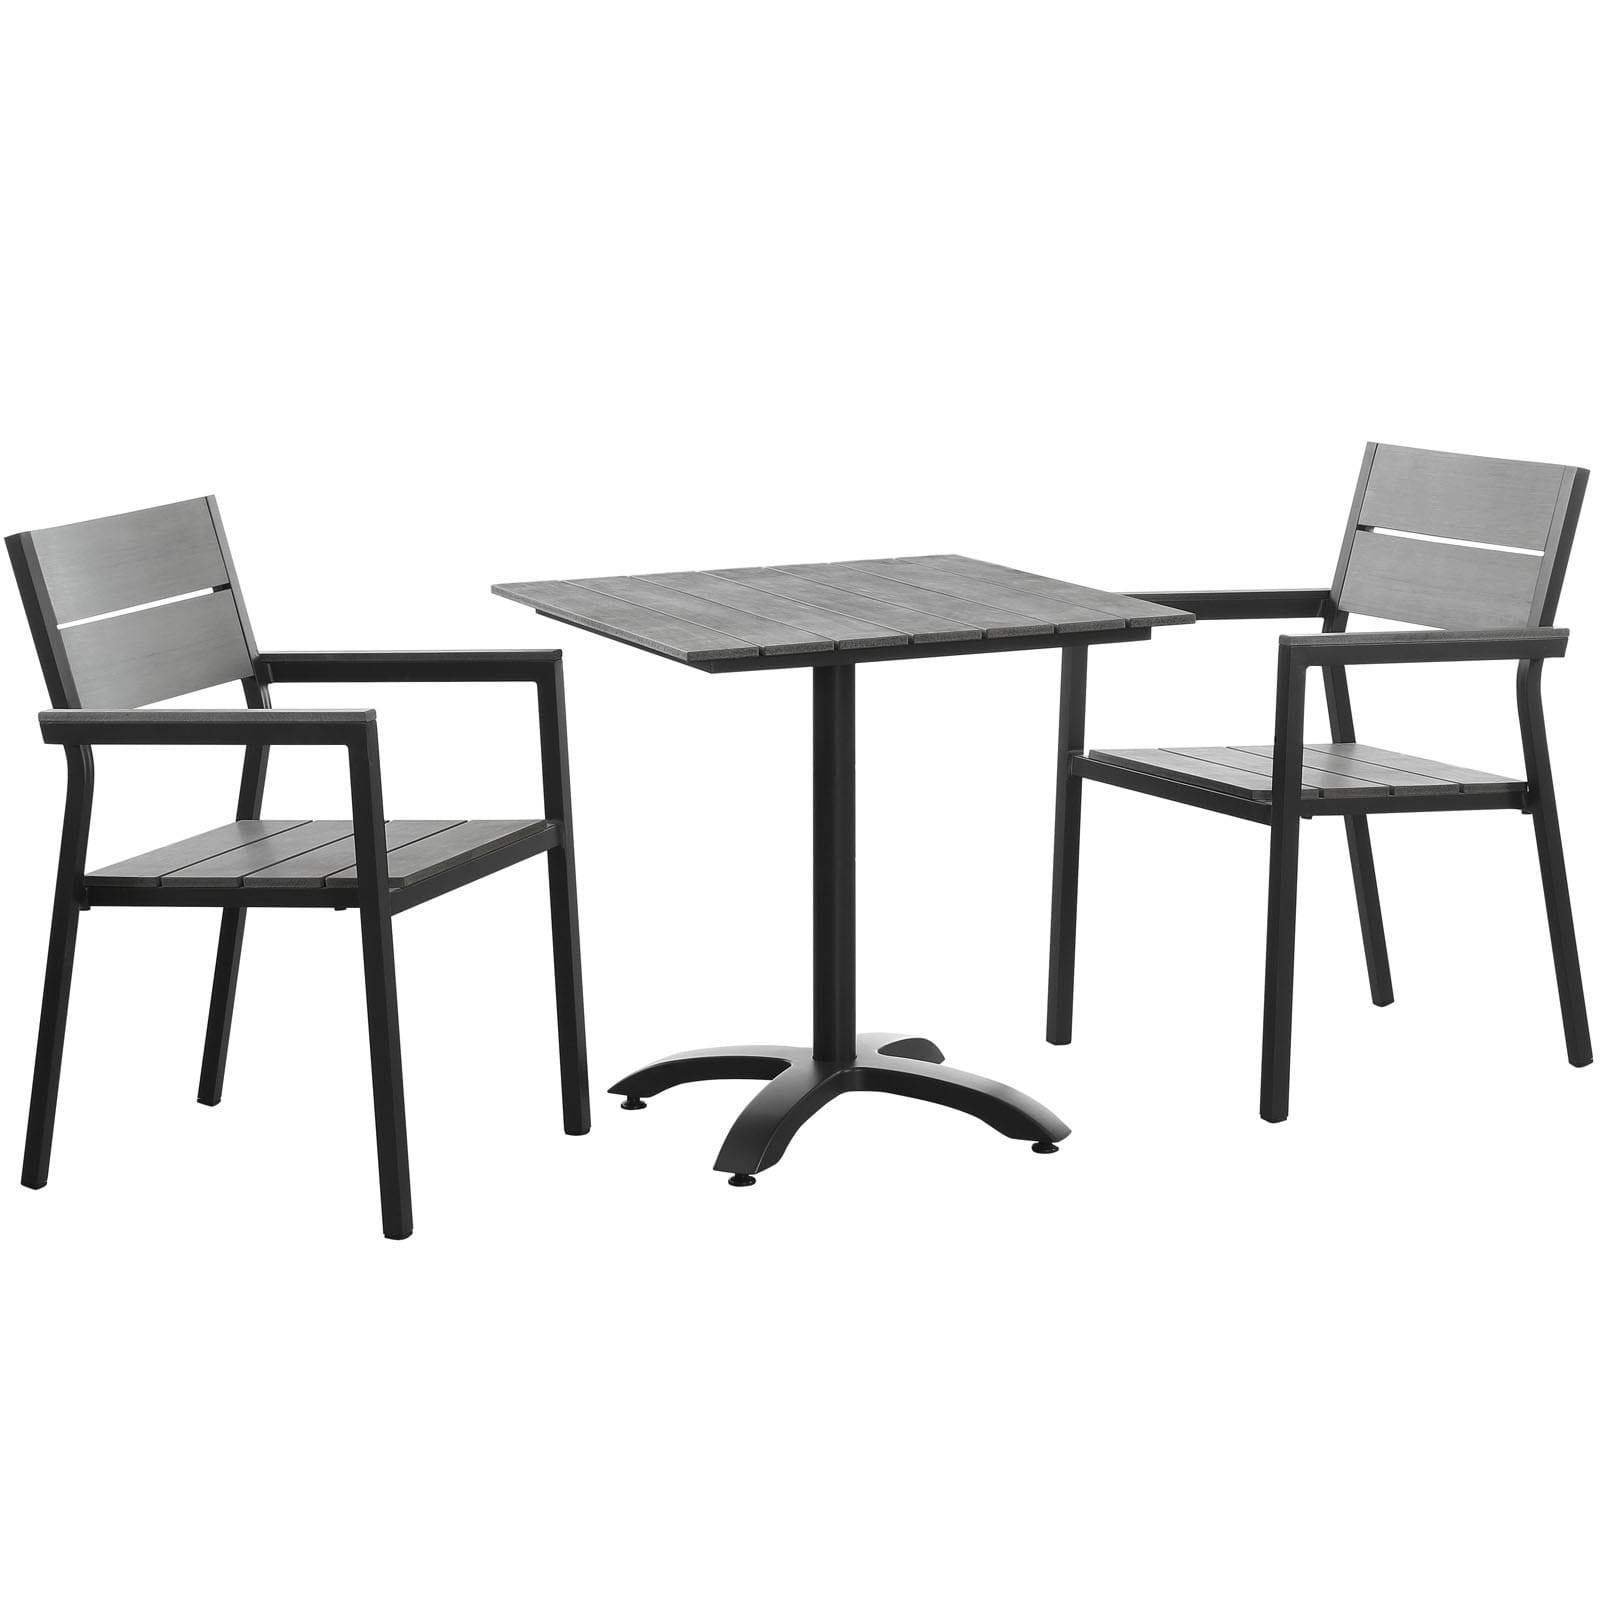 Outstanding Maine 3 Piece Outdoor Patio Dining Set Beutiful Home Inspiration Ommitmahrainfo